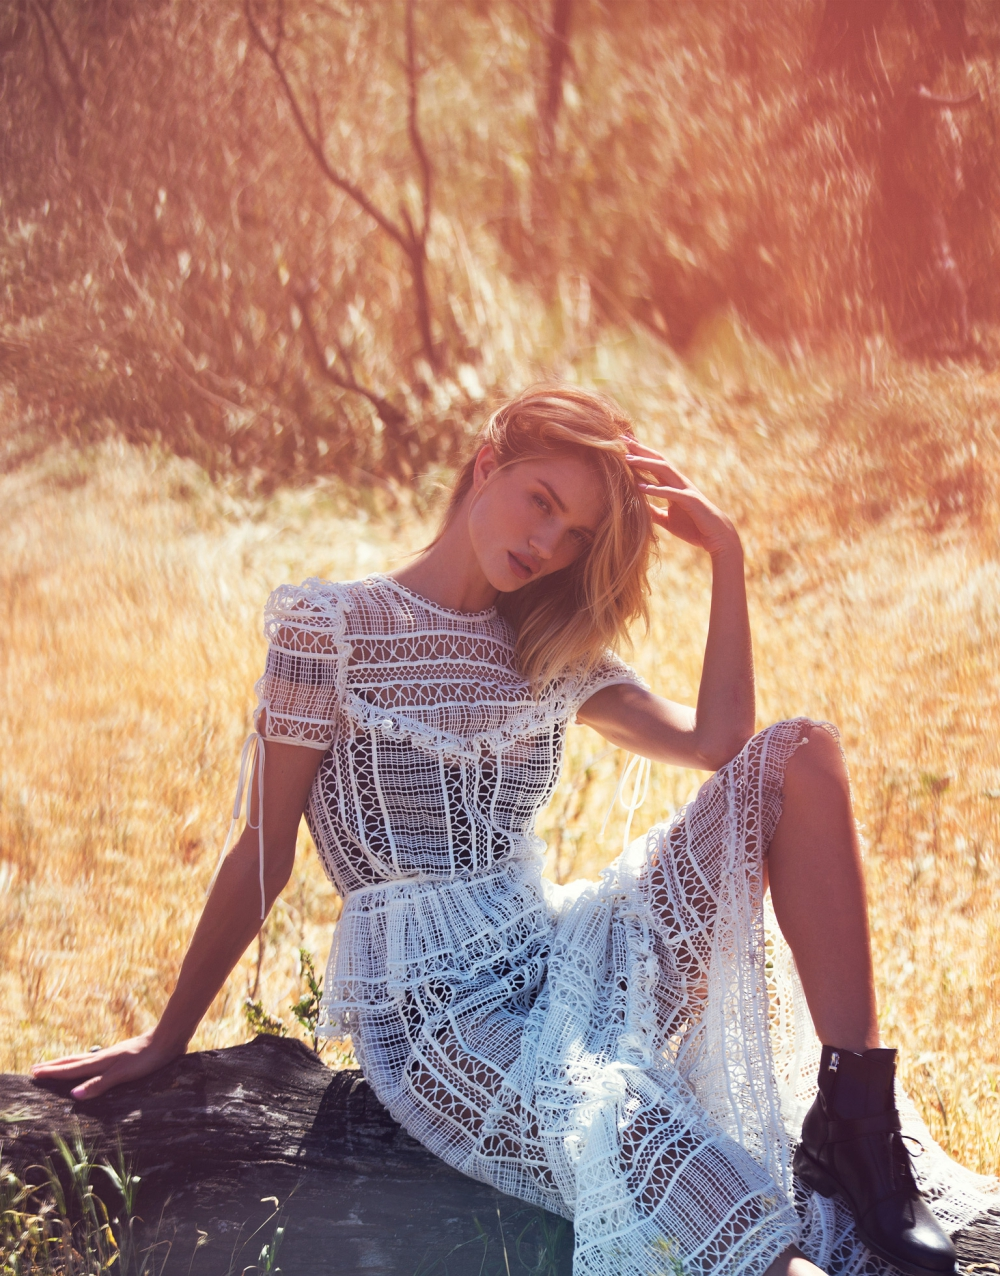 rosie-huntington-whiteley-by-david-bellemere-for-the-edit-april-2015-1